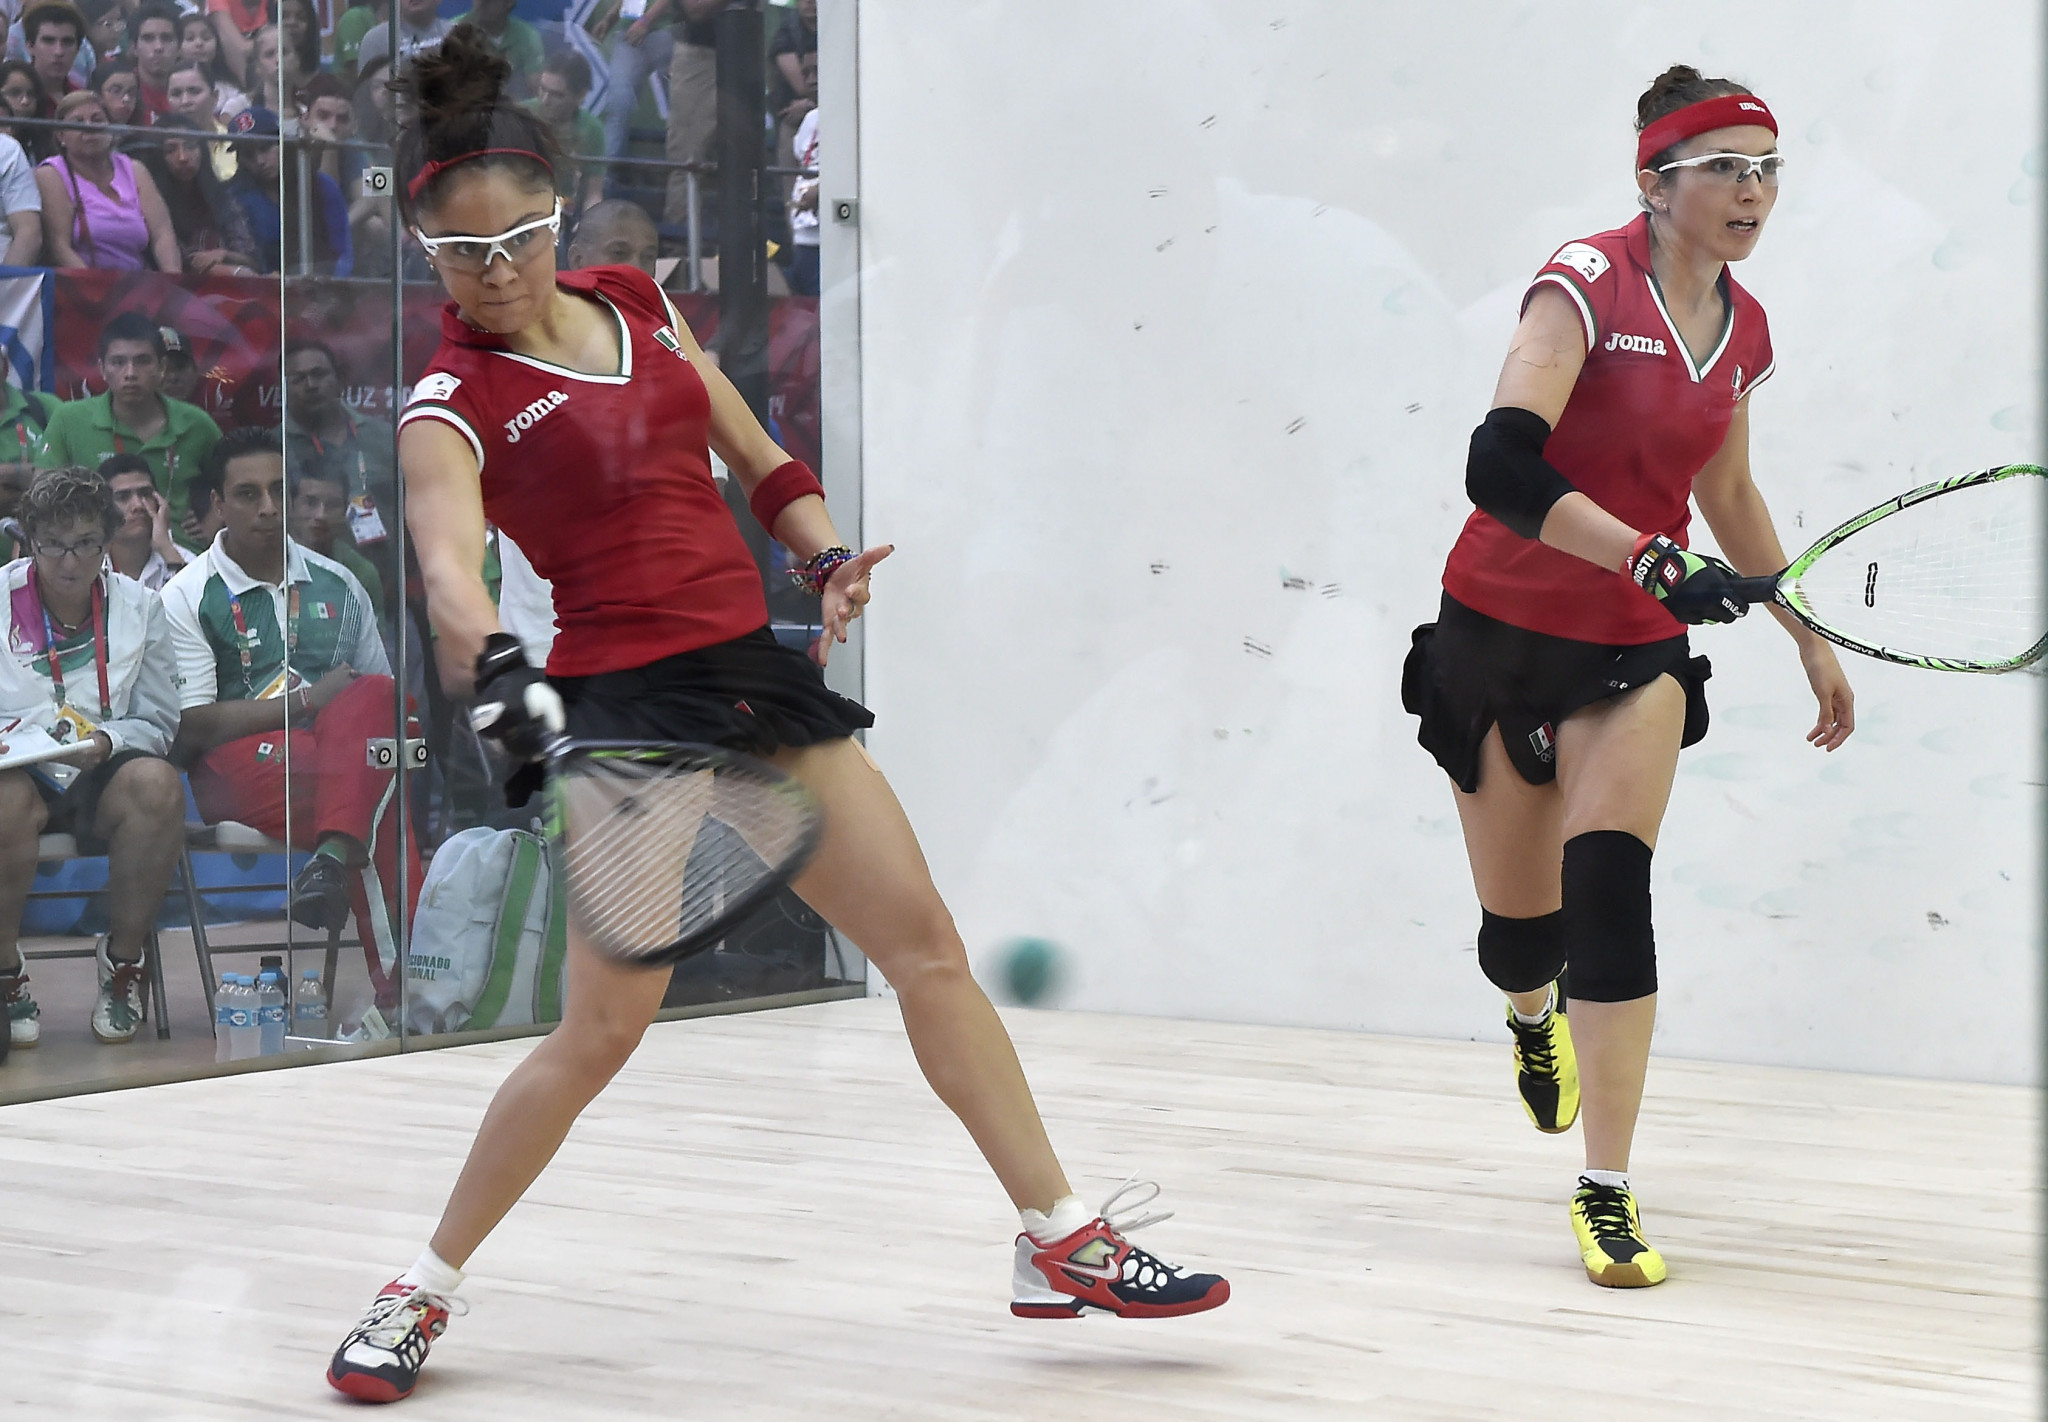 Paola Longoria, left, has won her first match at the Racquetball World Championships in Colombia as she looks to defend her title ©Getty Images